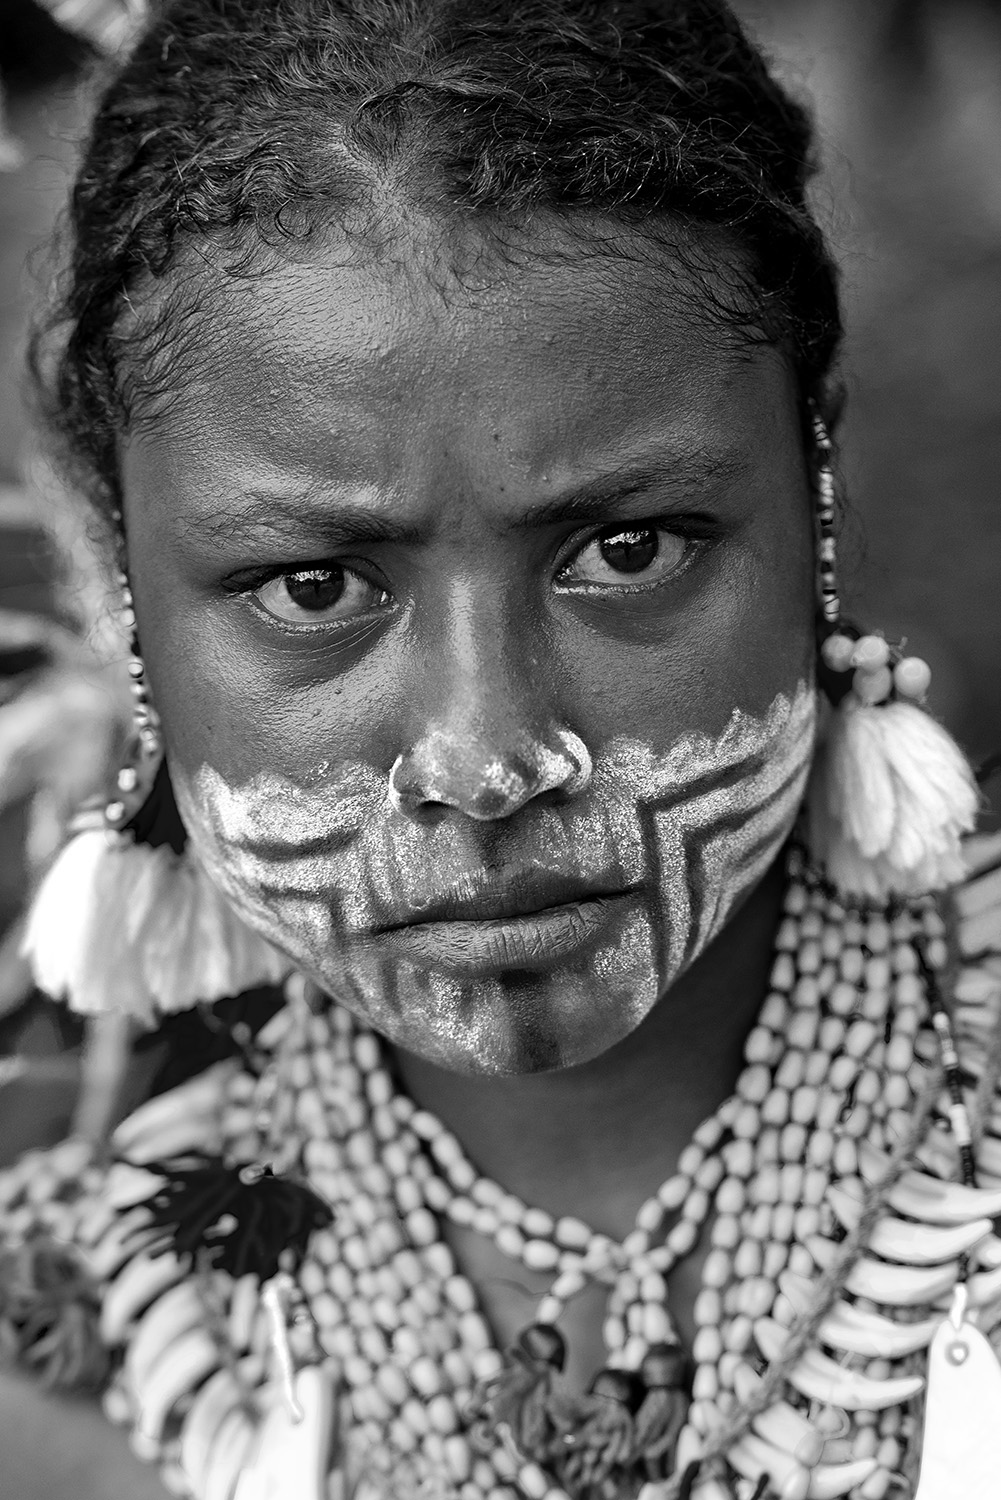 image of AARONTAIT COPYRIGHTED 2014 266 PNG PAPUA NEW GUNIEA DOCUMENTARY PHOTOGRAPHER BLACK WHITE PORTRAIT TRIBAL TRADITIONAL TRAVEL PHOTOGRAPHER GIRL